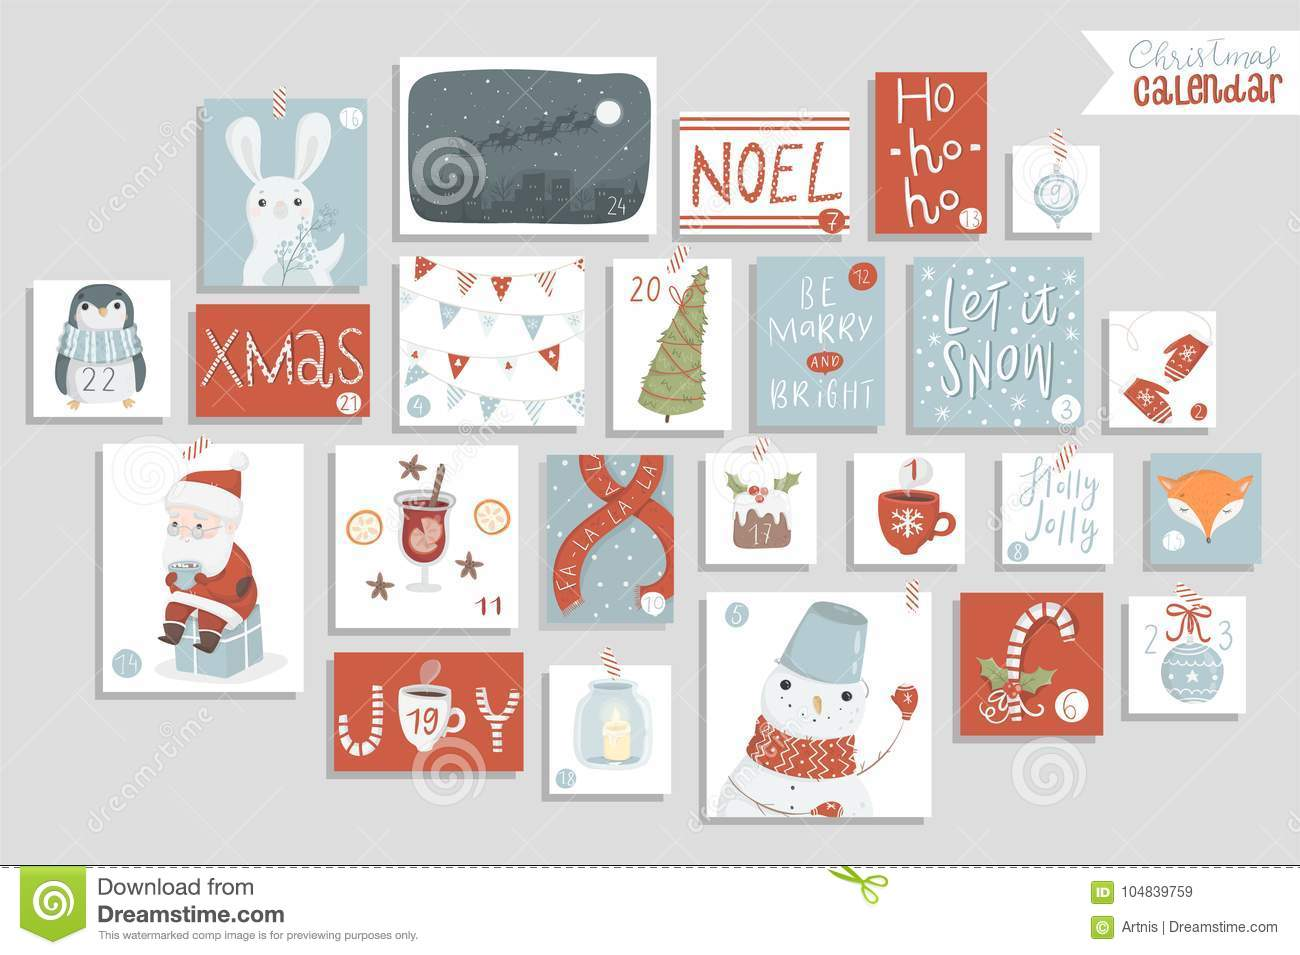 photograph relating to Printable Christmas Calendar known as Xmas Arrival Calendar, Adorable Hand Drawn Layout. Inventory